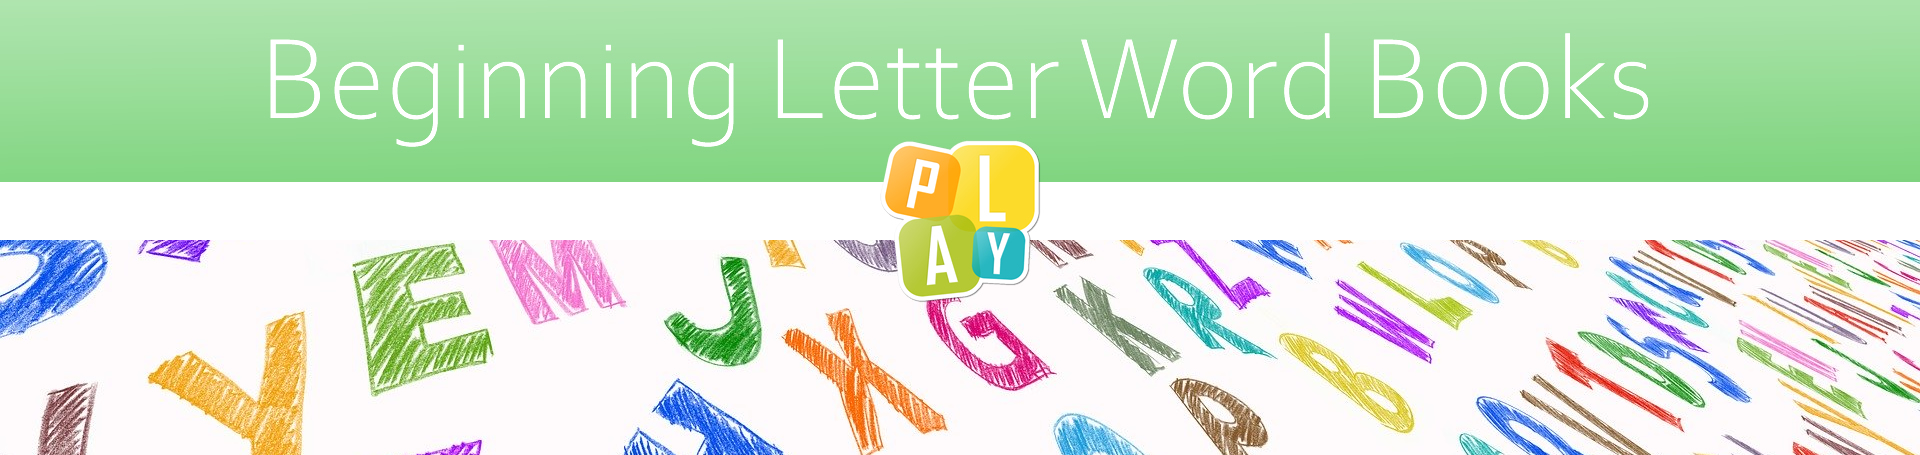 Header Image Beginning Letter Word Books